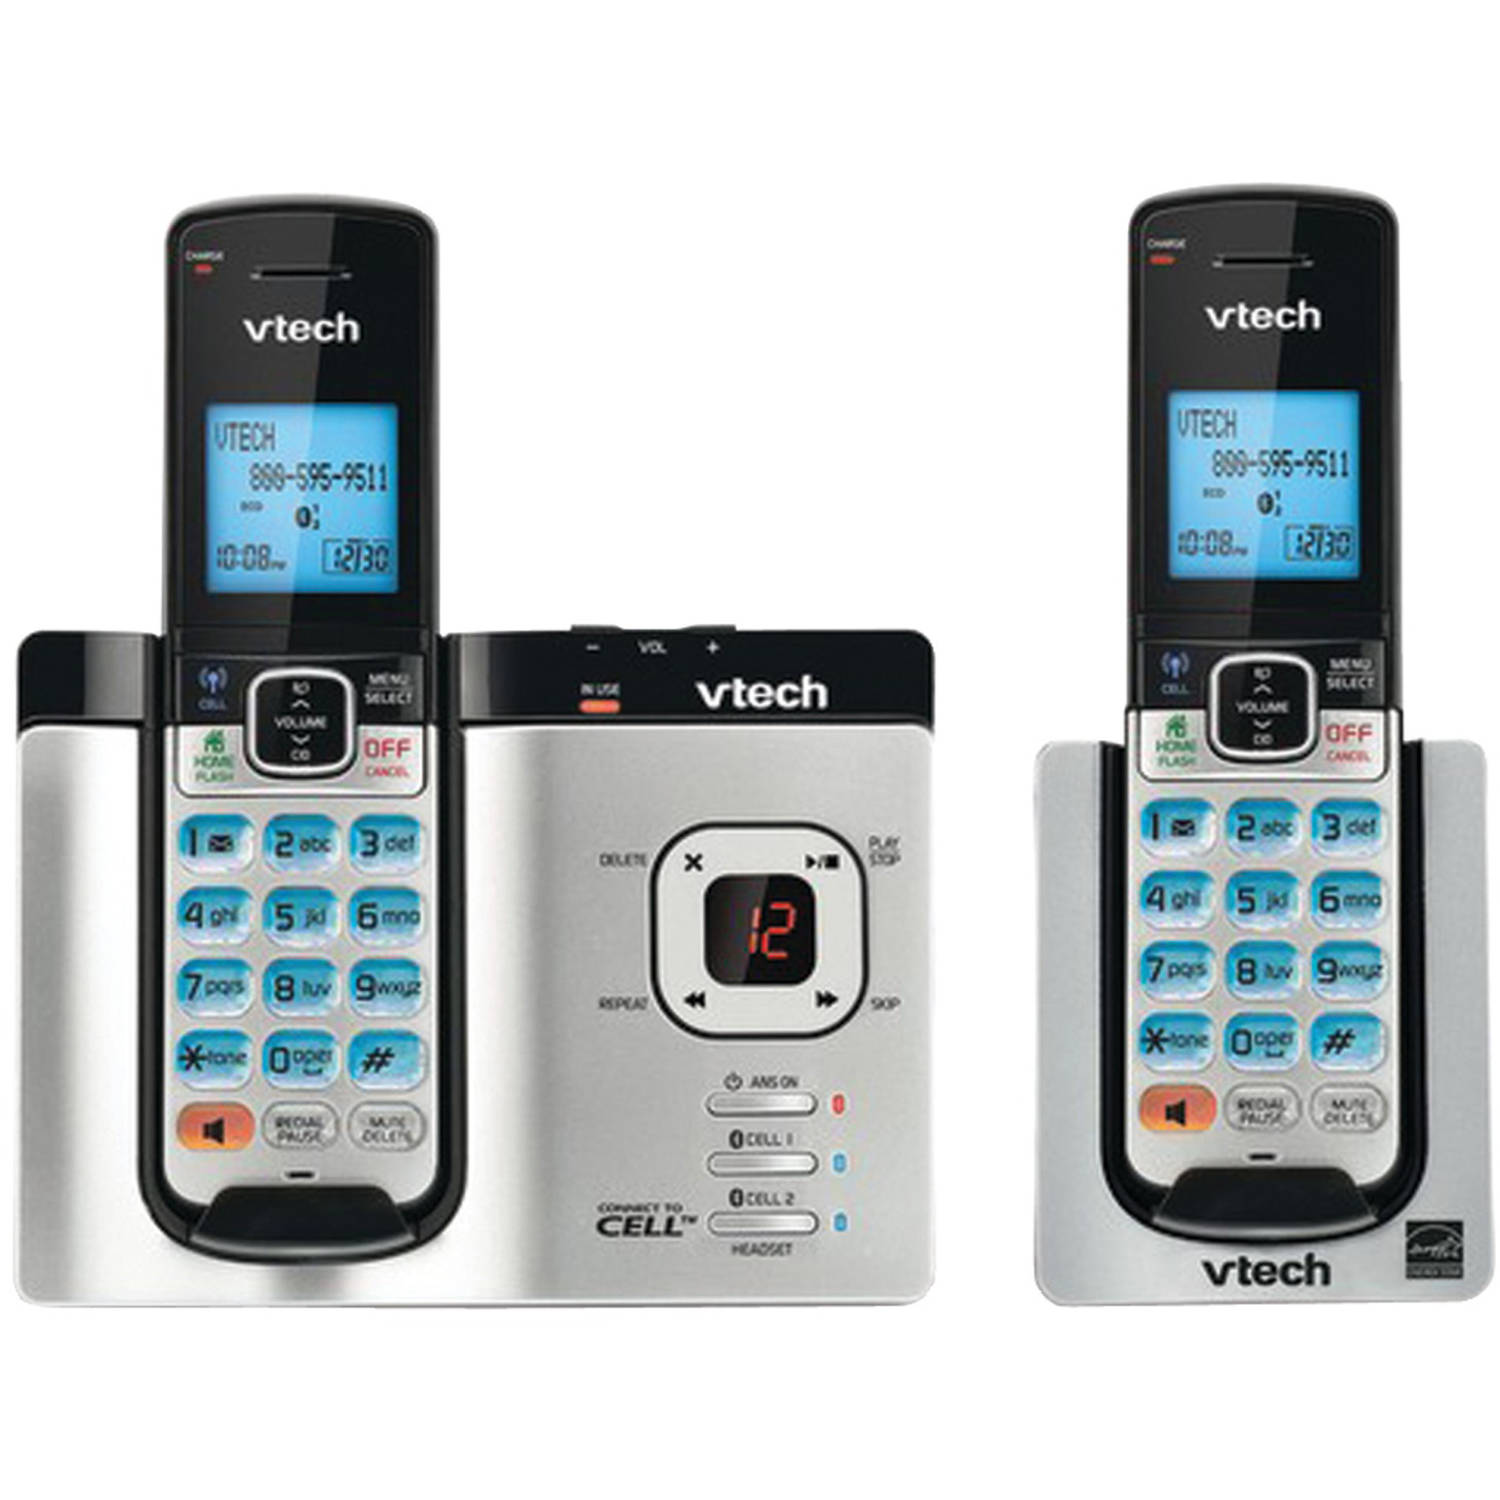 VTech Ds6621-2 Connect to Cell Phone with Answering System and 2 Handsets